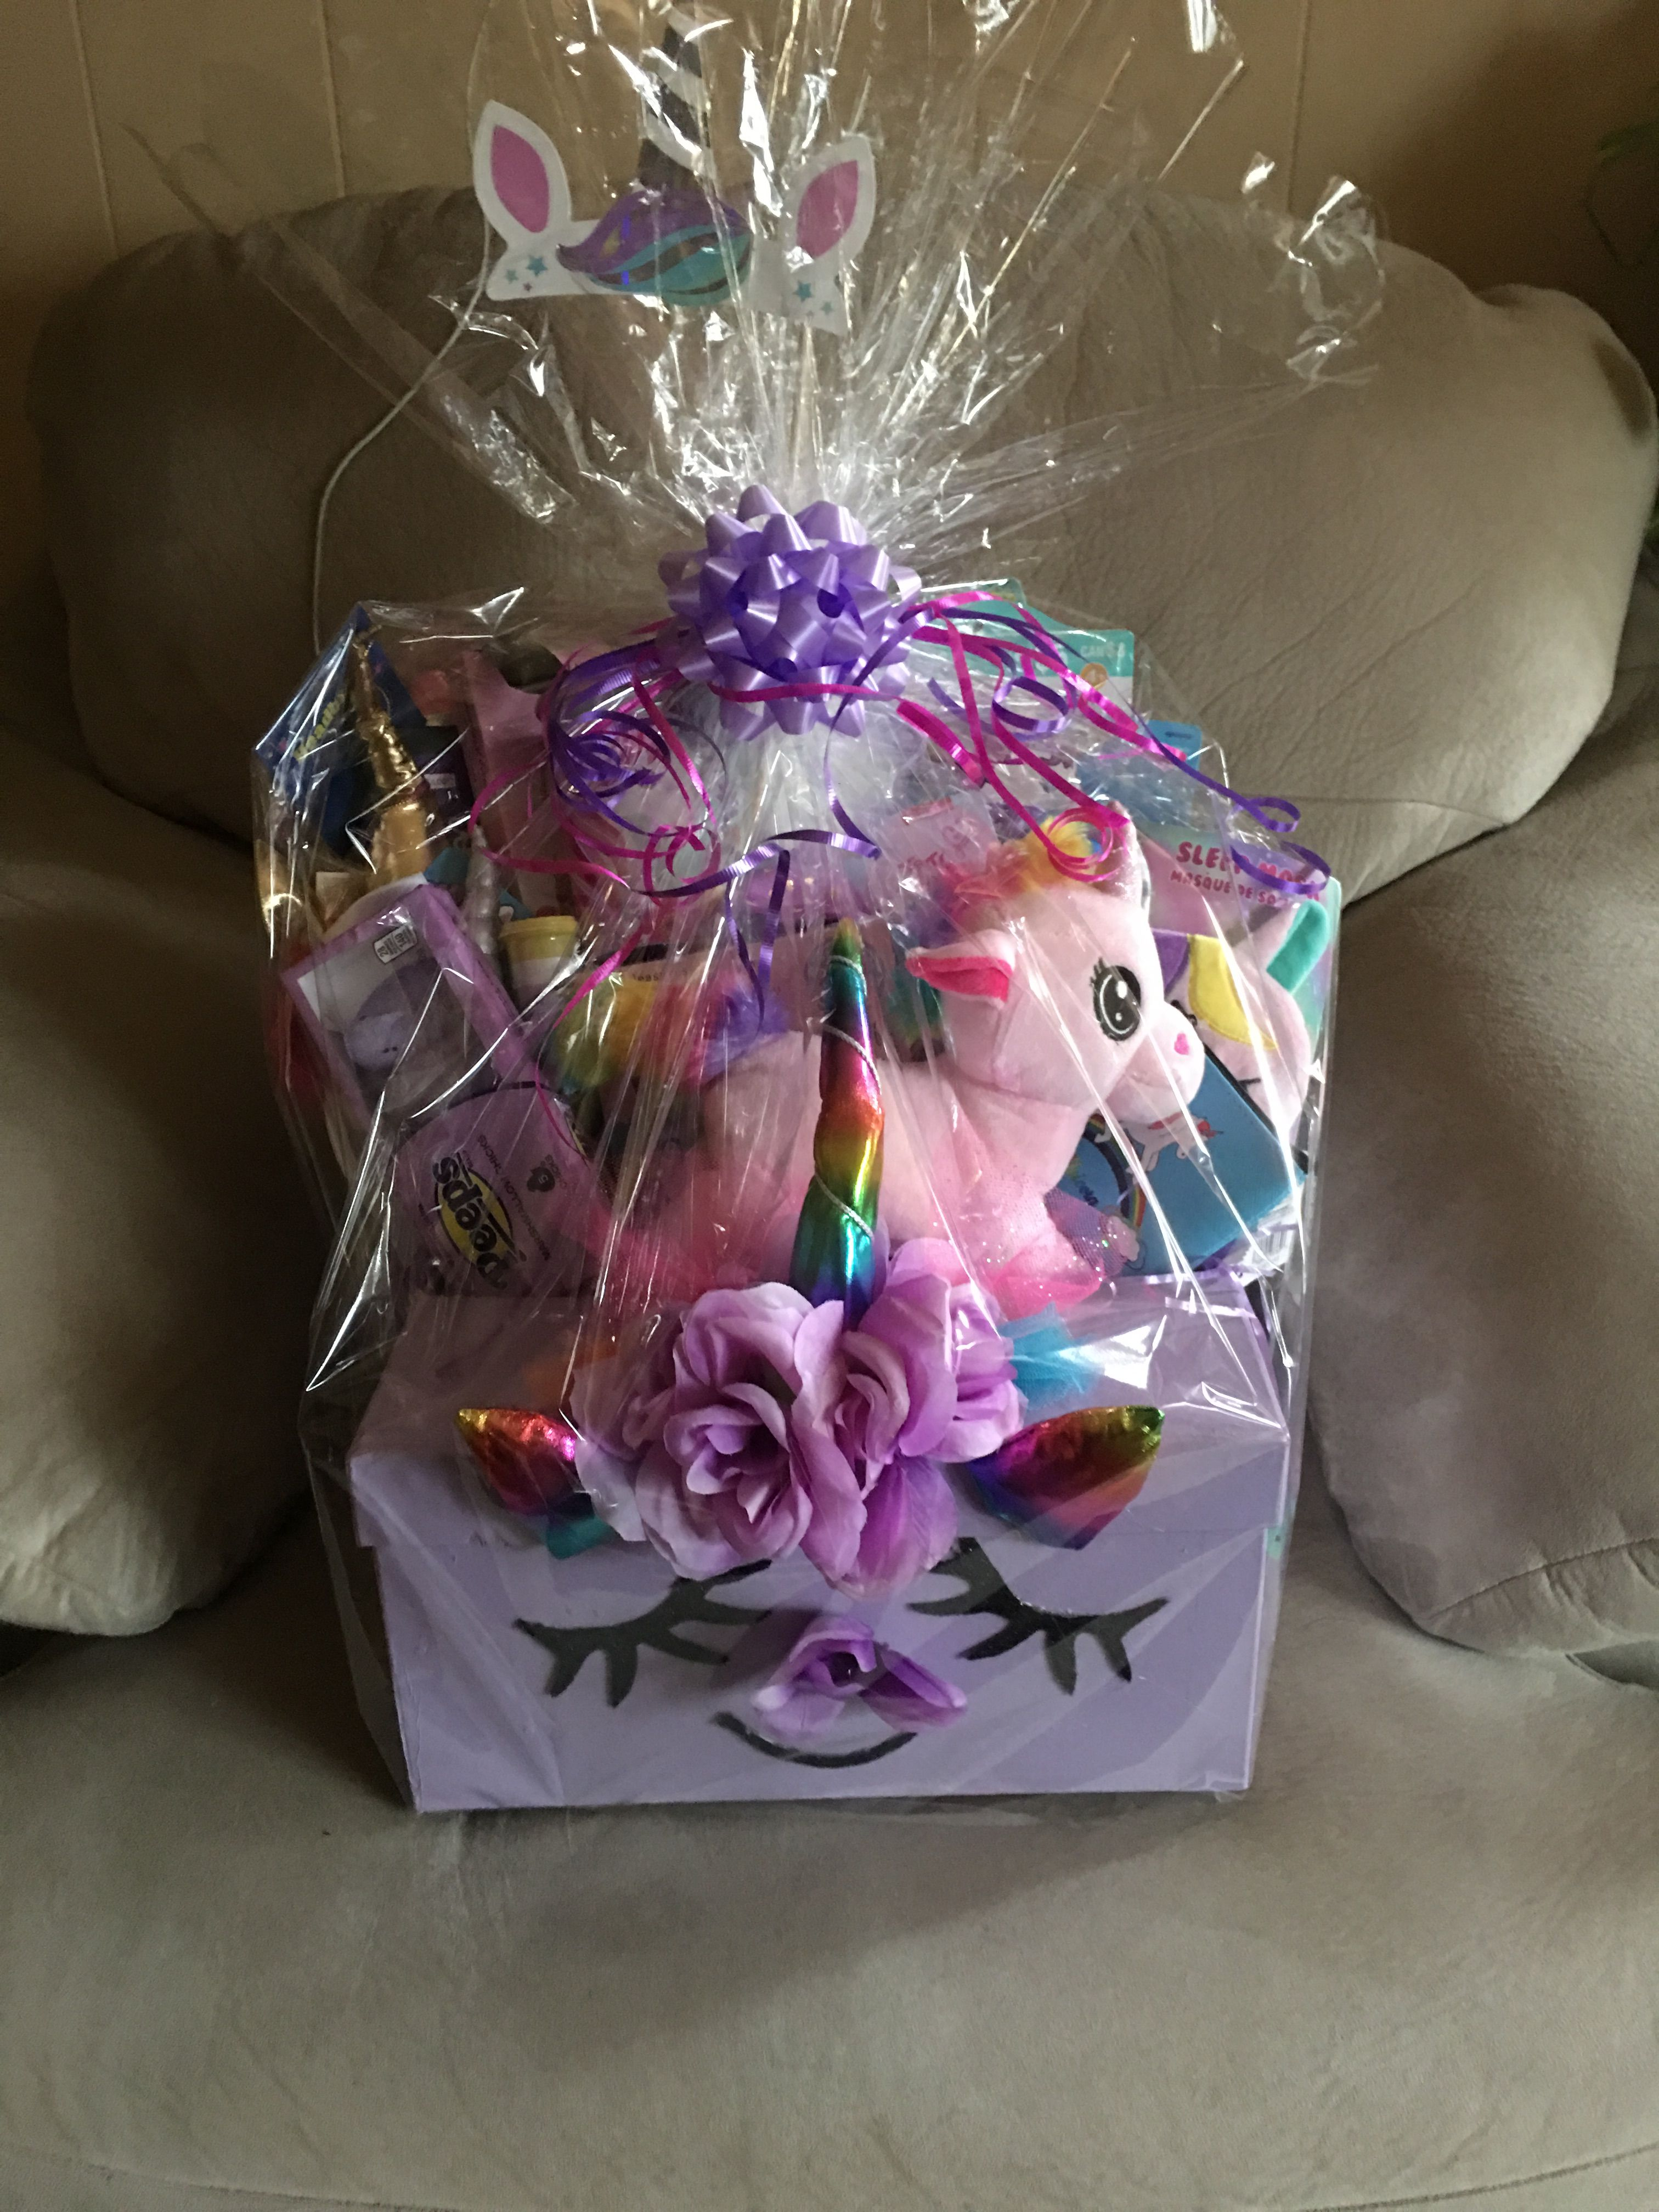 Pin by Raquel Ginga on party ideas | Party favors, Party